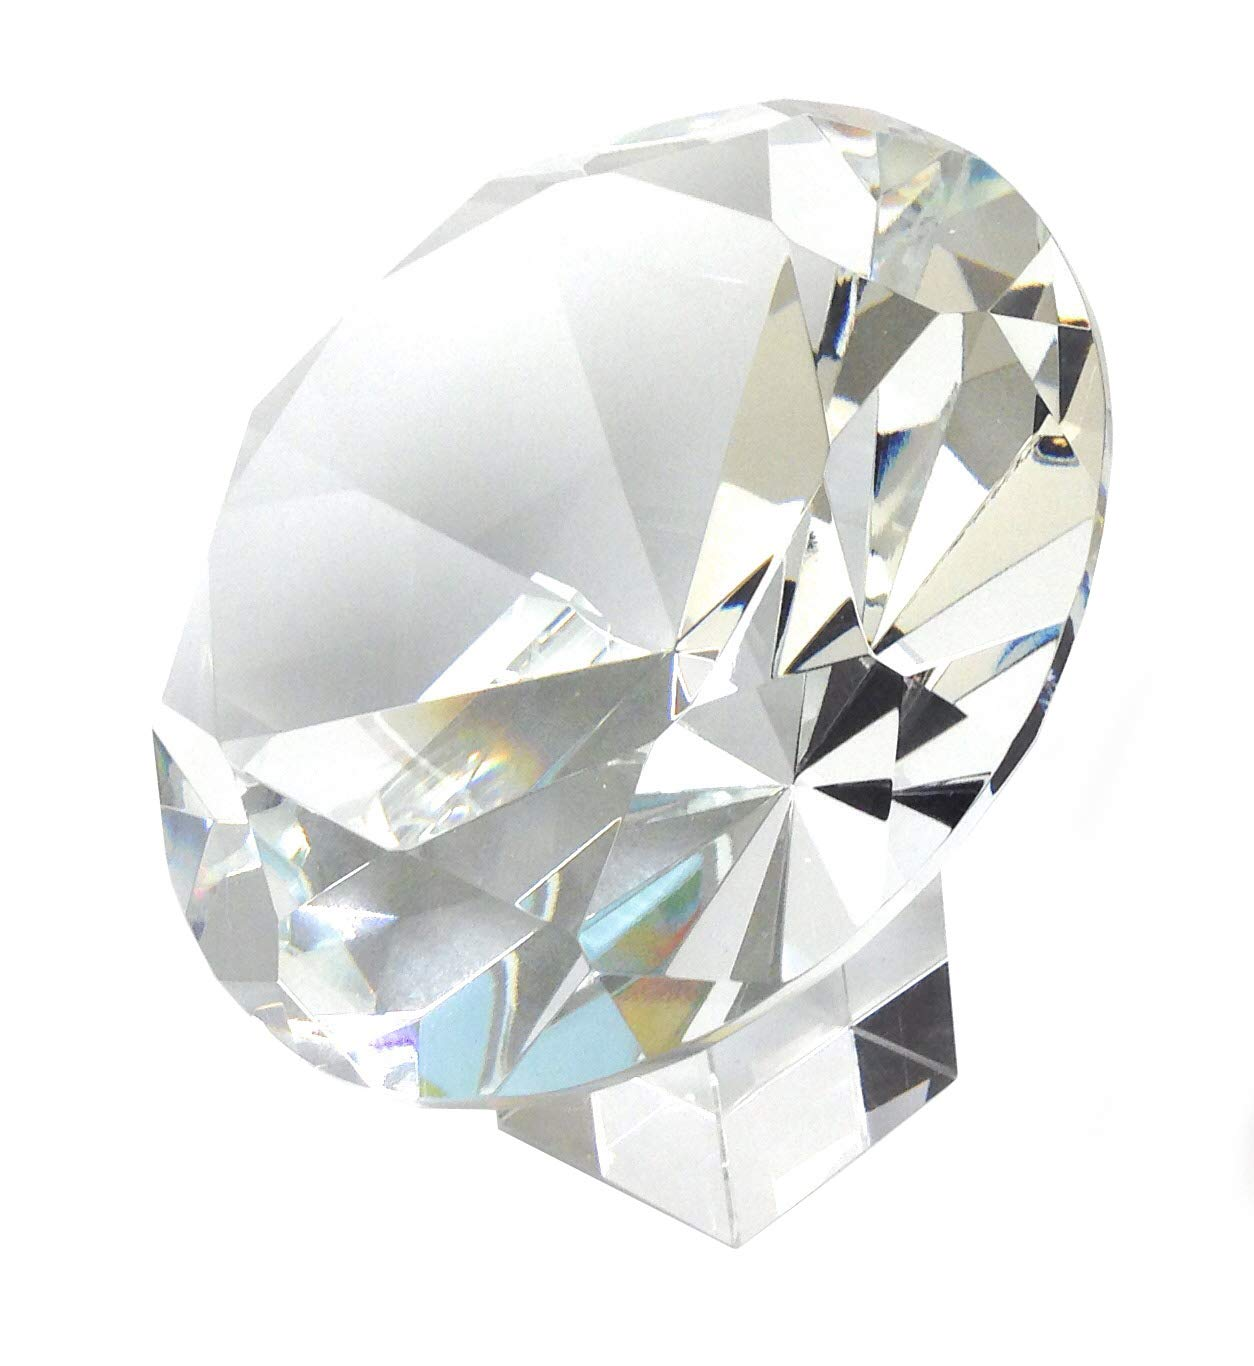 Amlong Crystal 120mm 5 inch Crystal Diamond Jewel Paperweight with Gift Box by Amlong Crystal